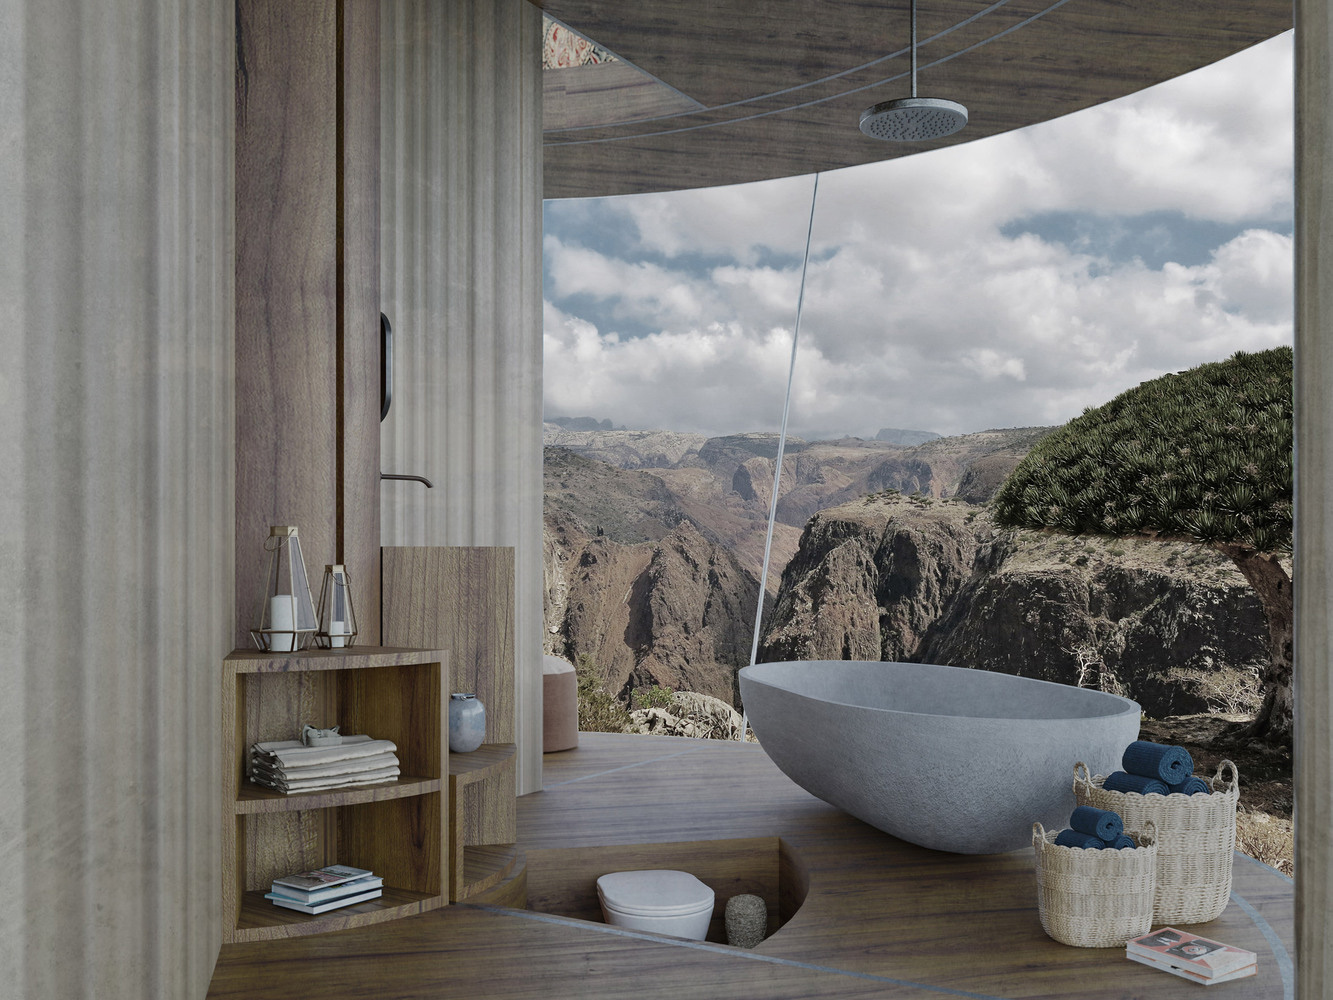 Casa Ojalá render showing wooden interiors and stone bath tub